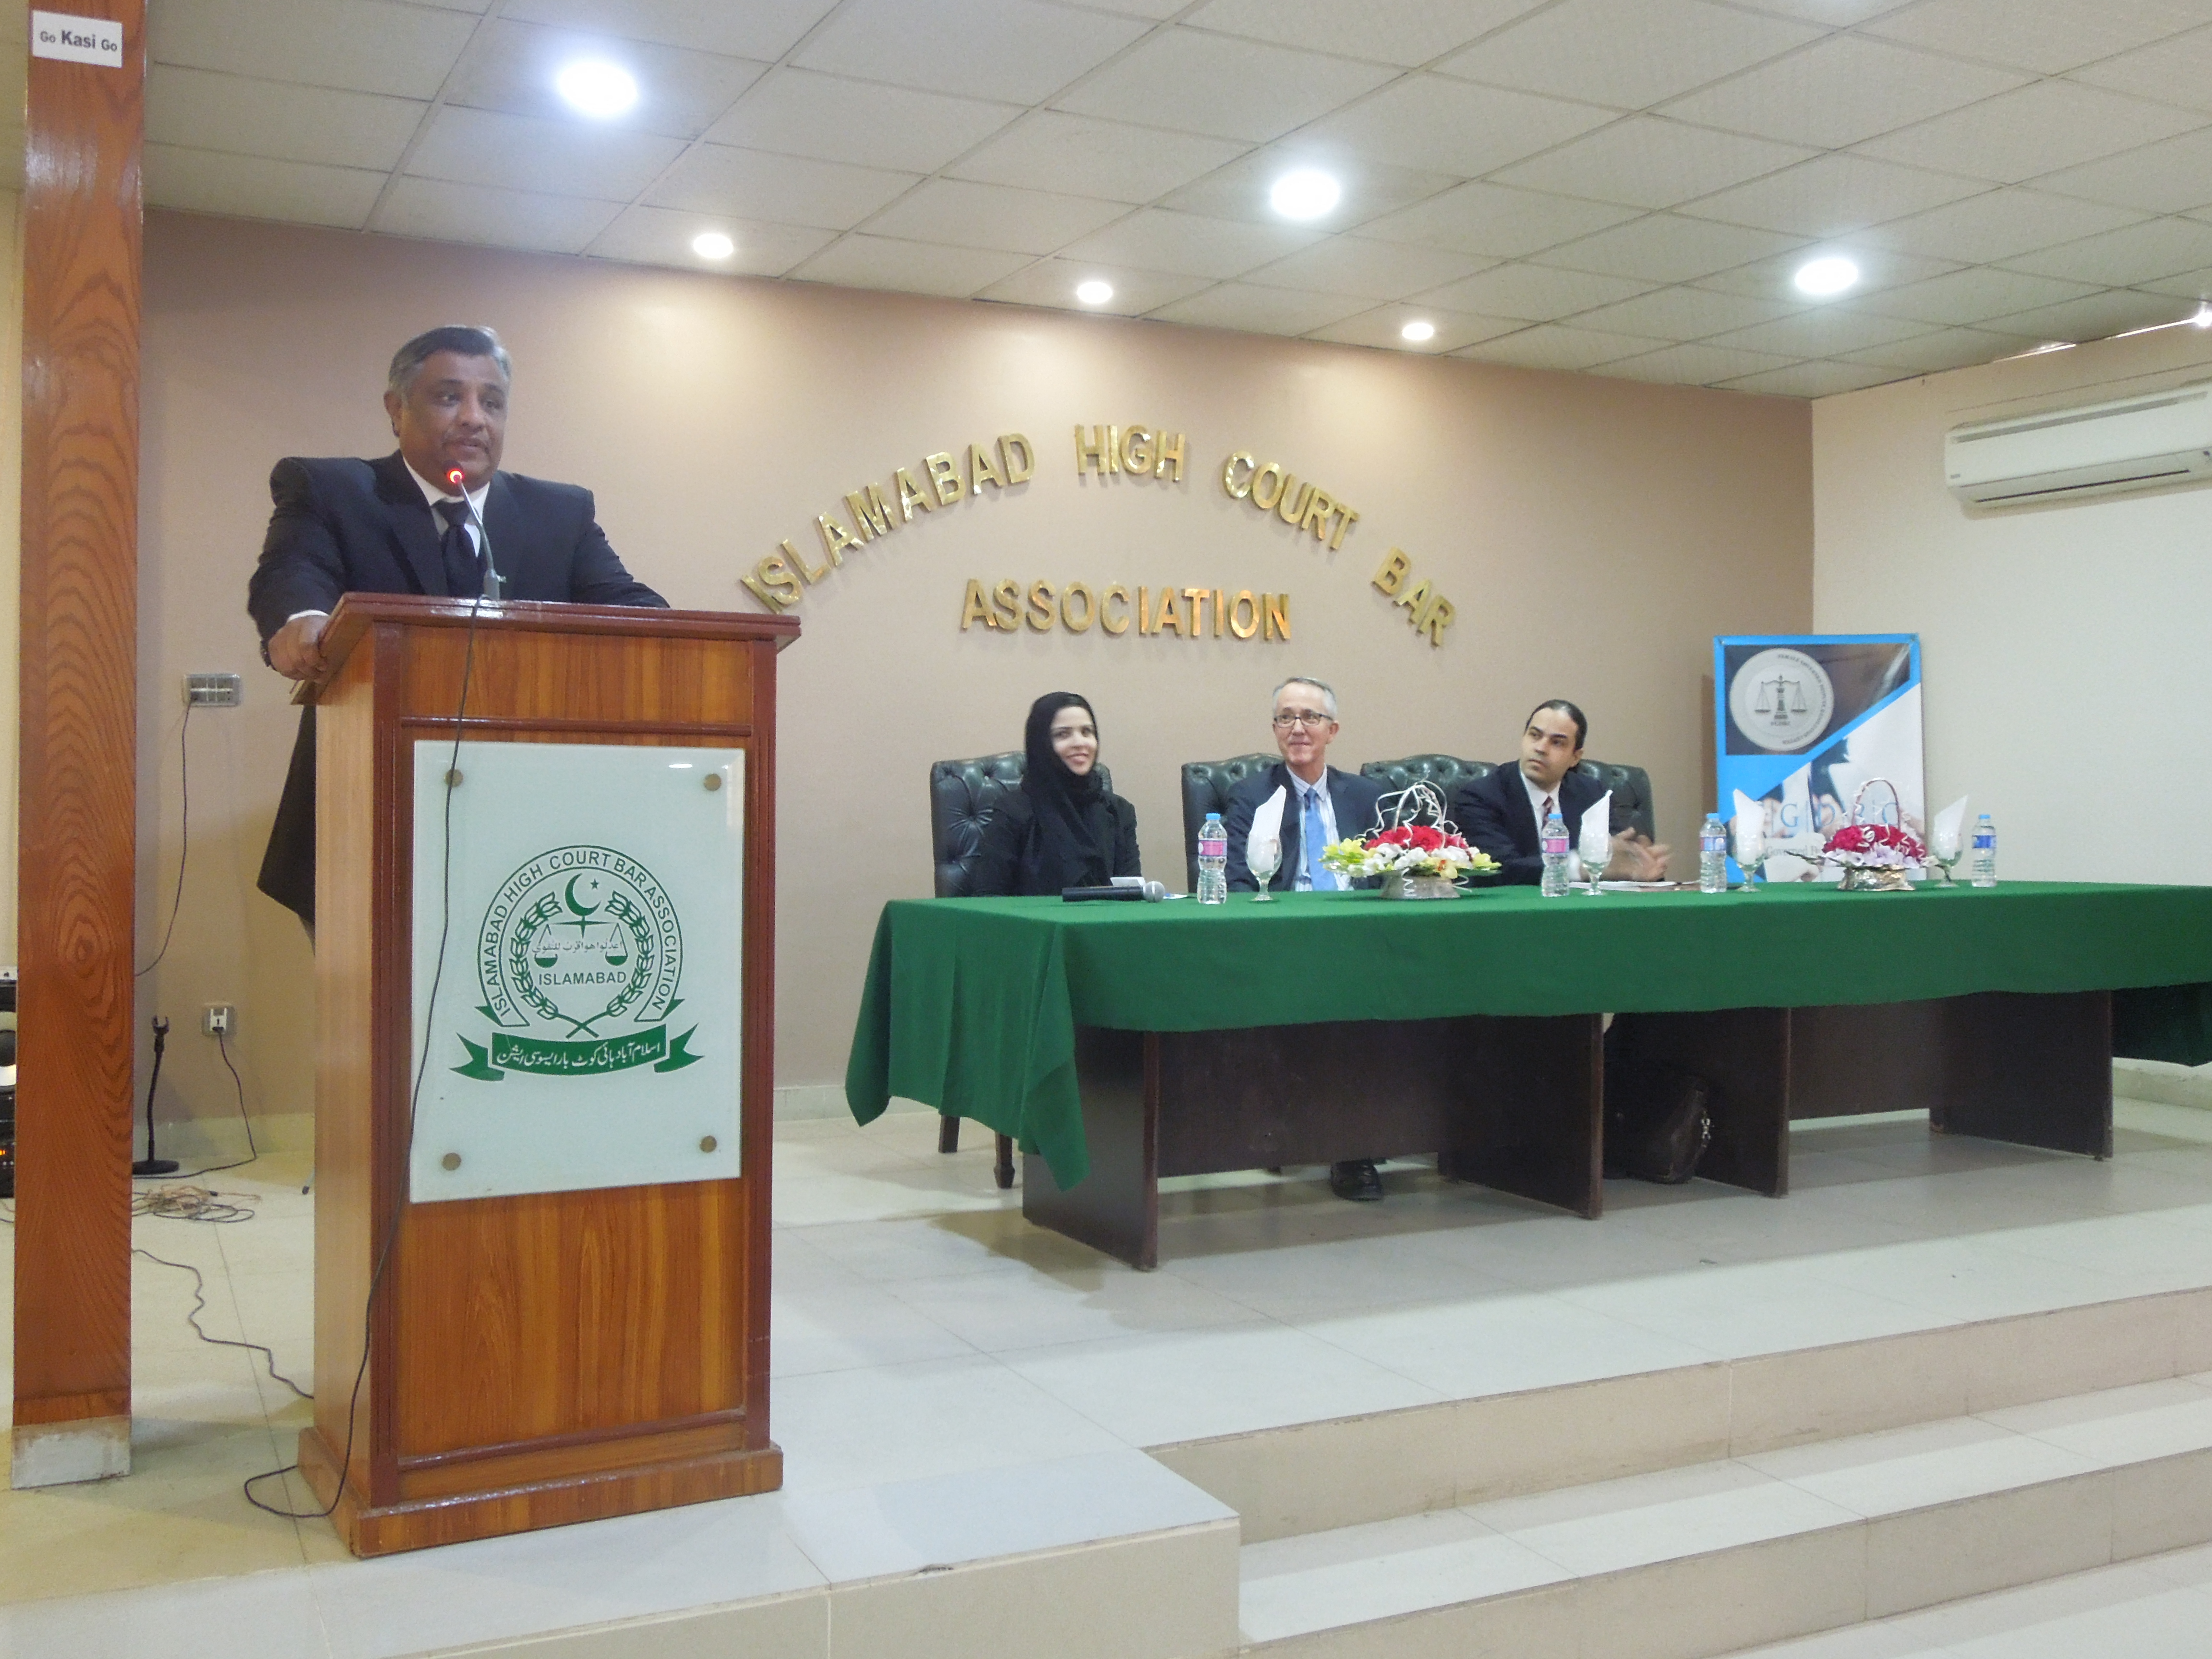 PJN International Legal Experts Lecture at Islamabad High Court